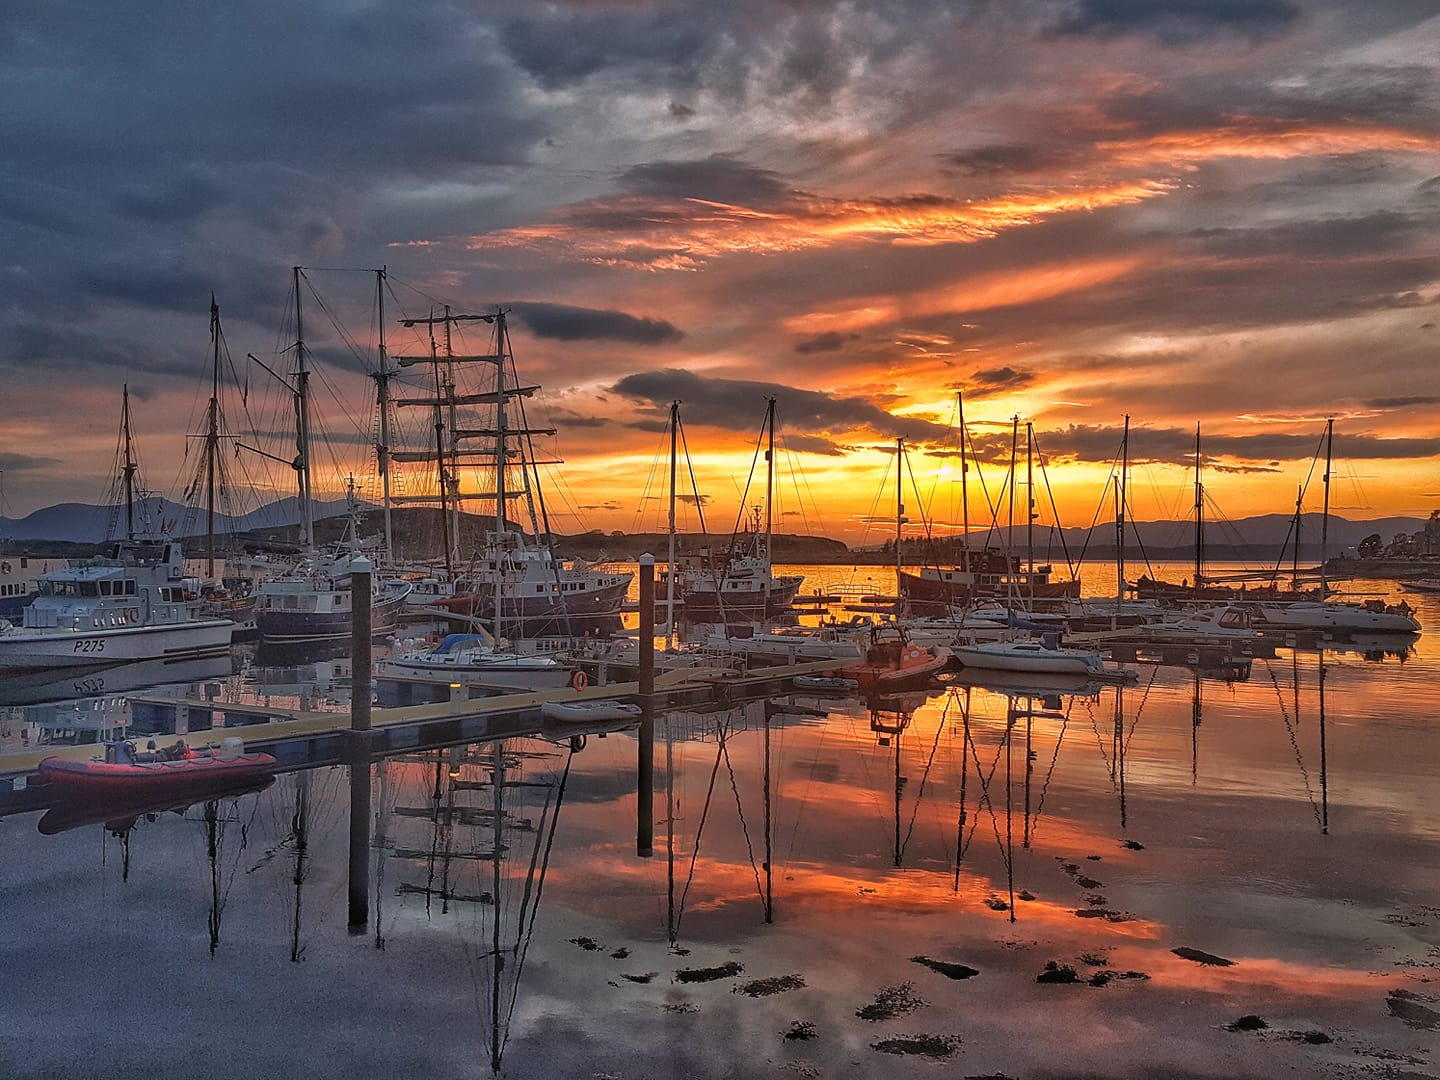 Sheila MacIntyre sunset over pontoons